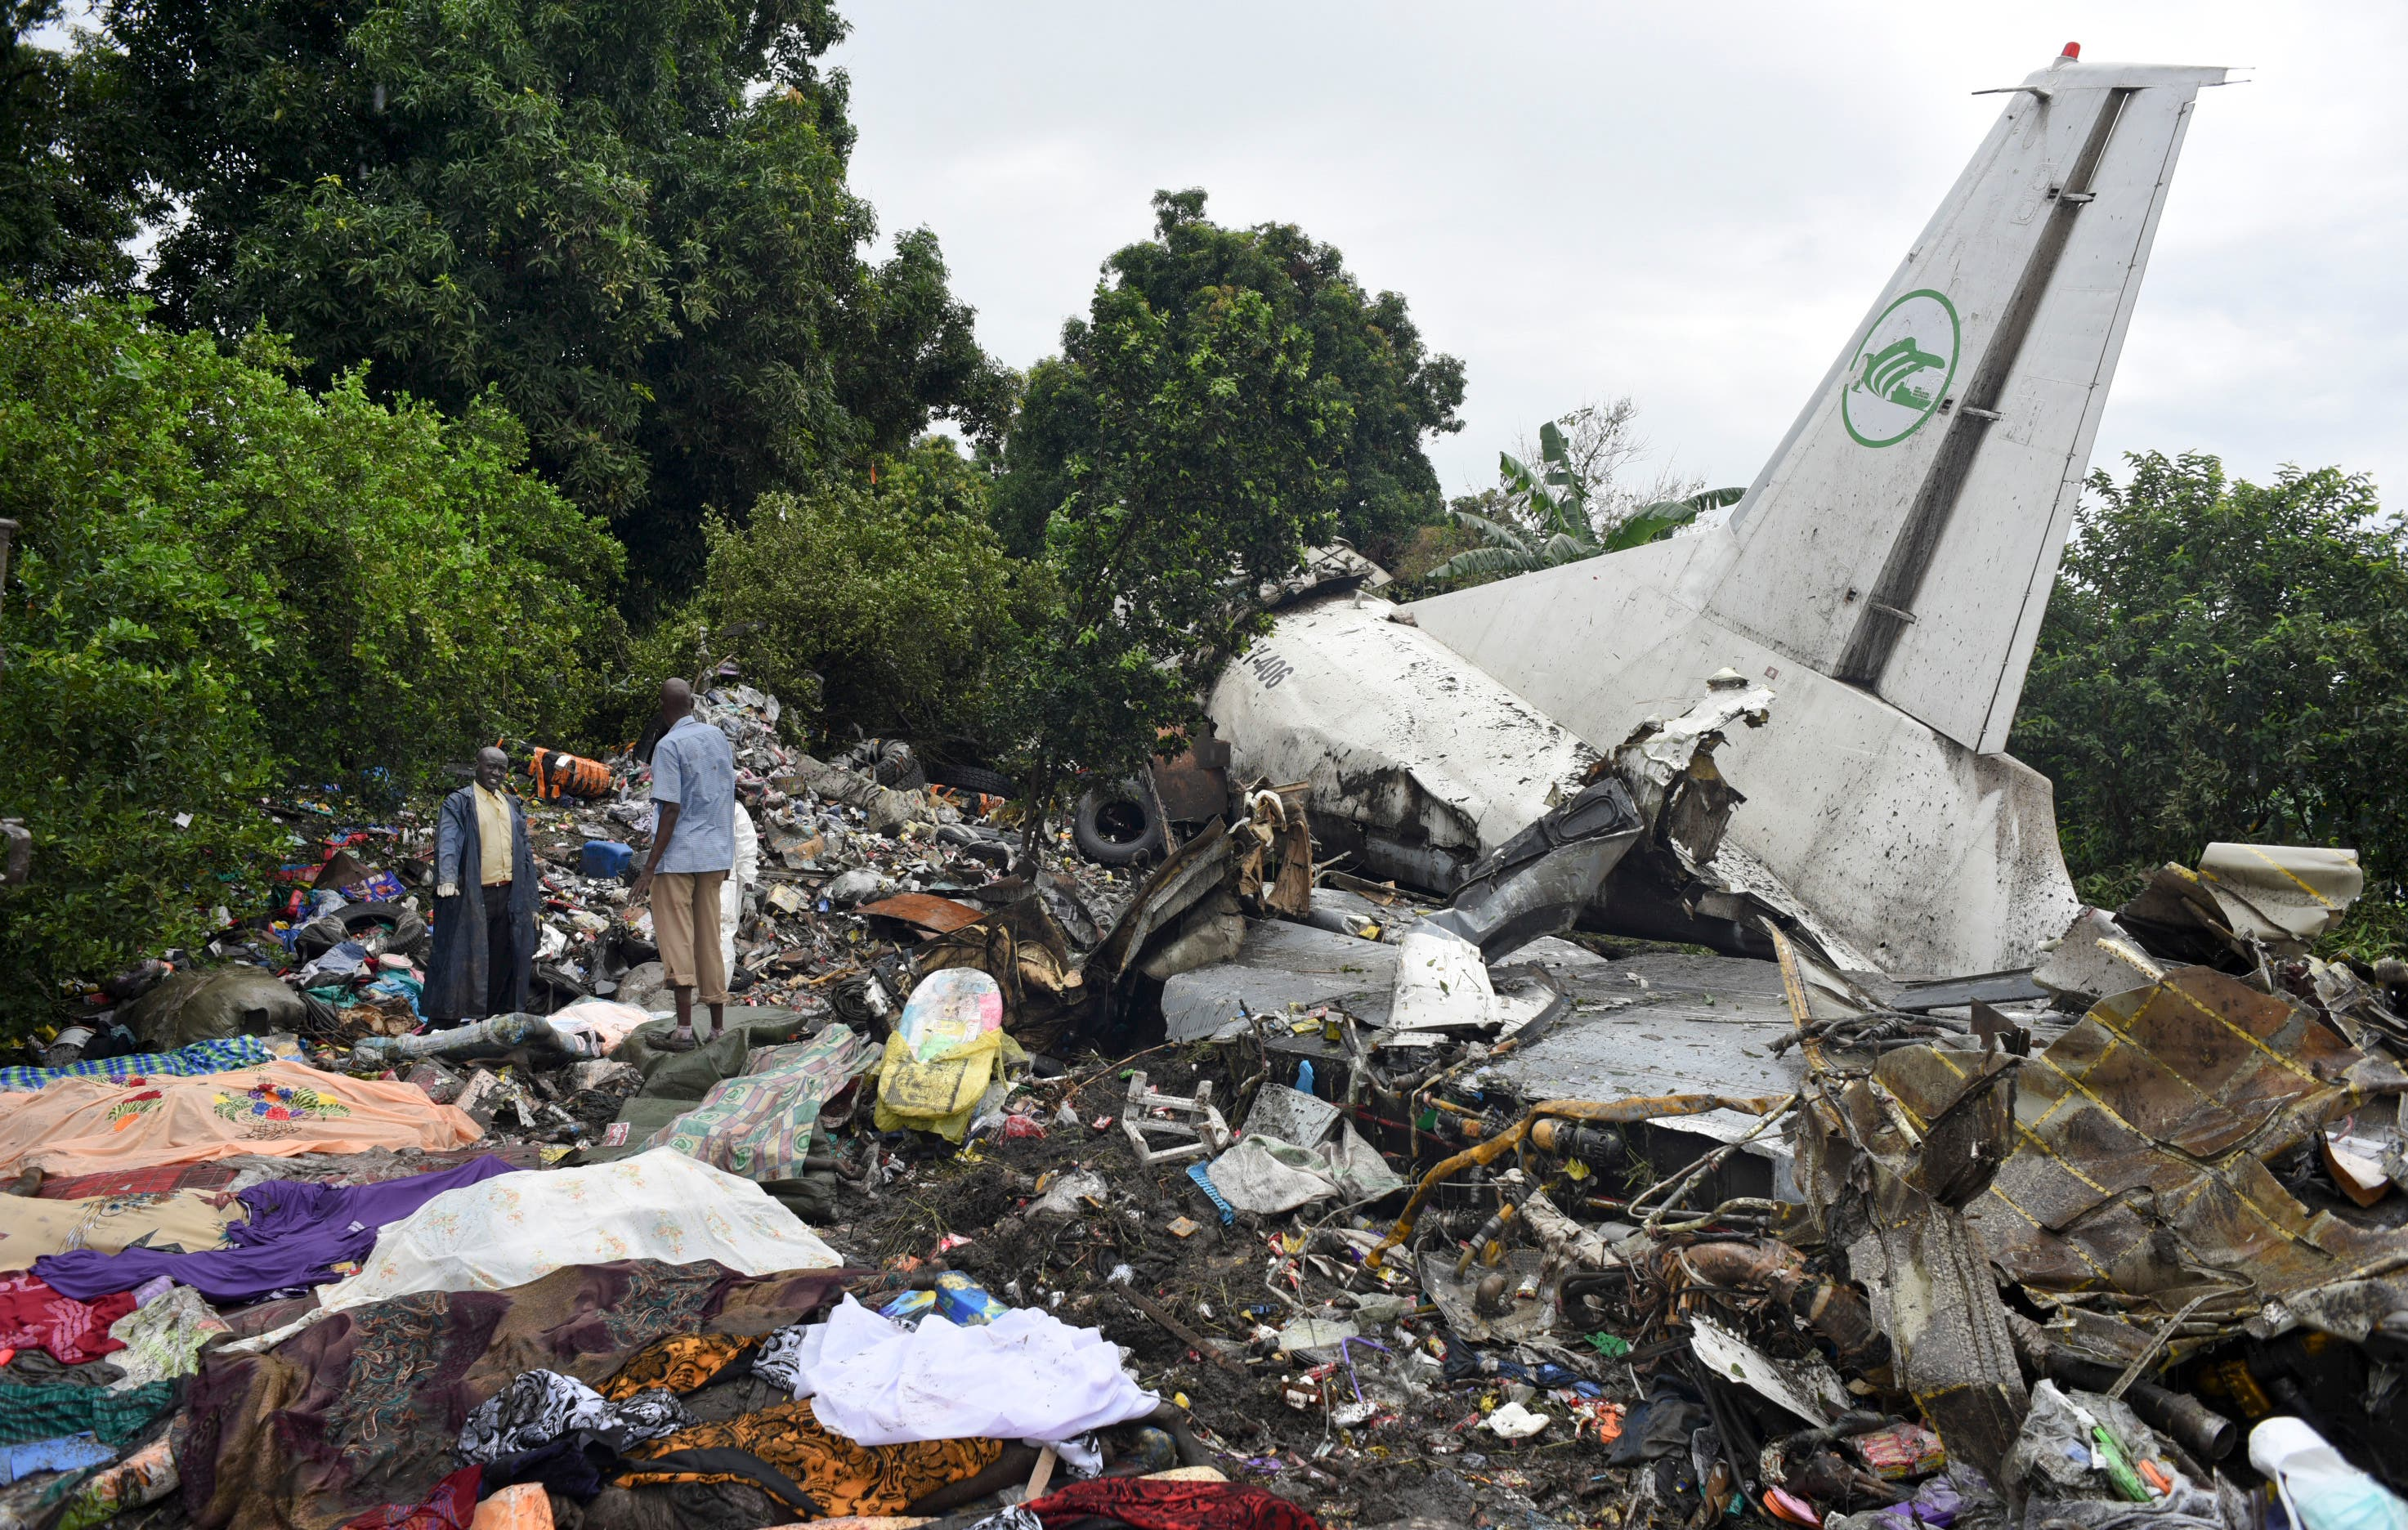 Responders pick through the wreckage of a cargo plane which crashed in the capital Juba, South Sudan Wednesday, Nov. 4, 2015. (AP)